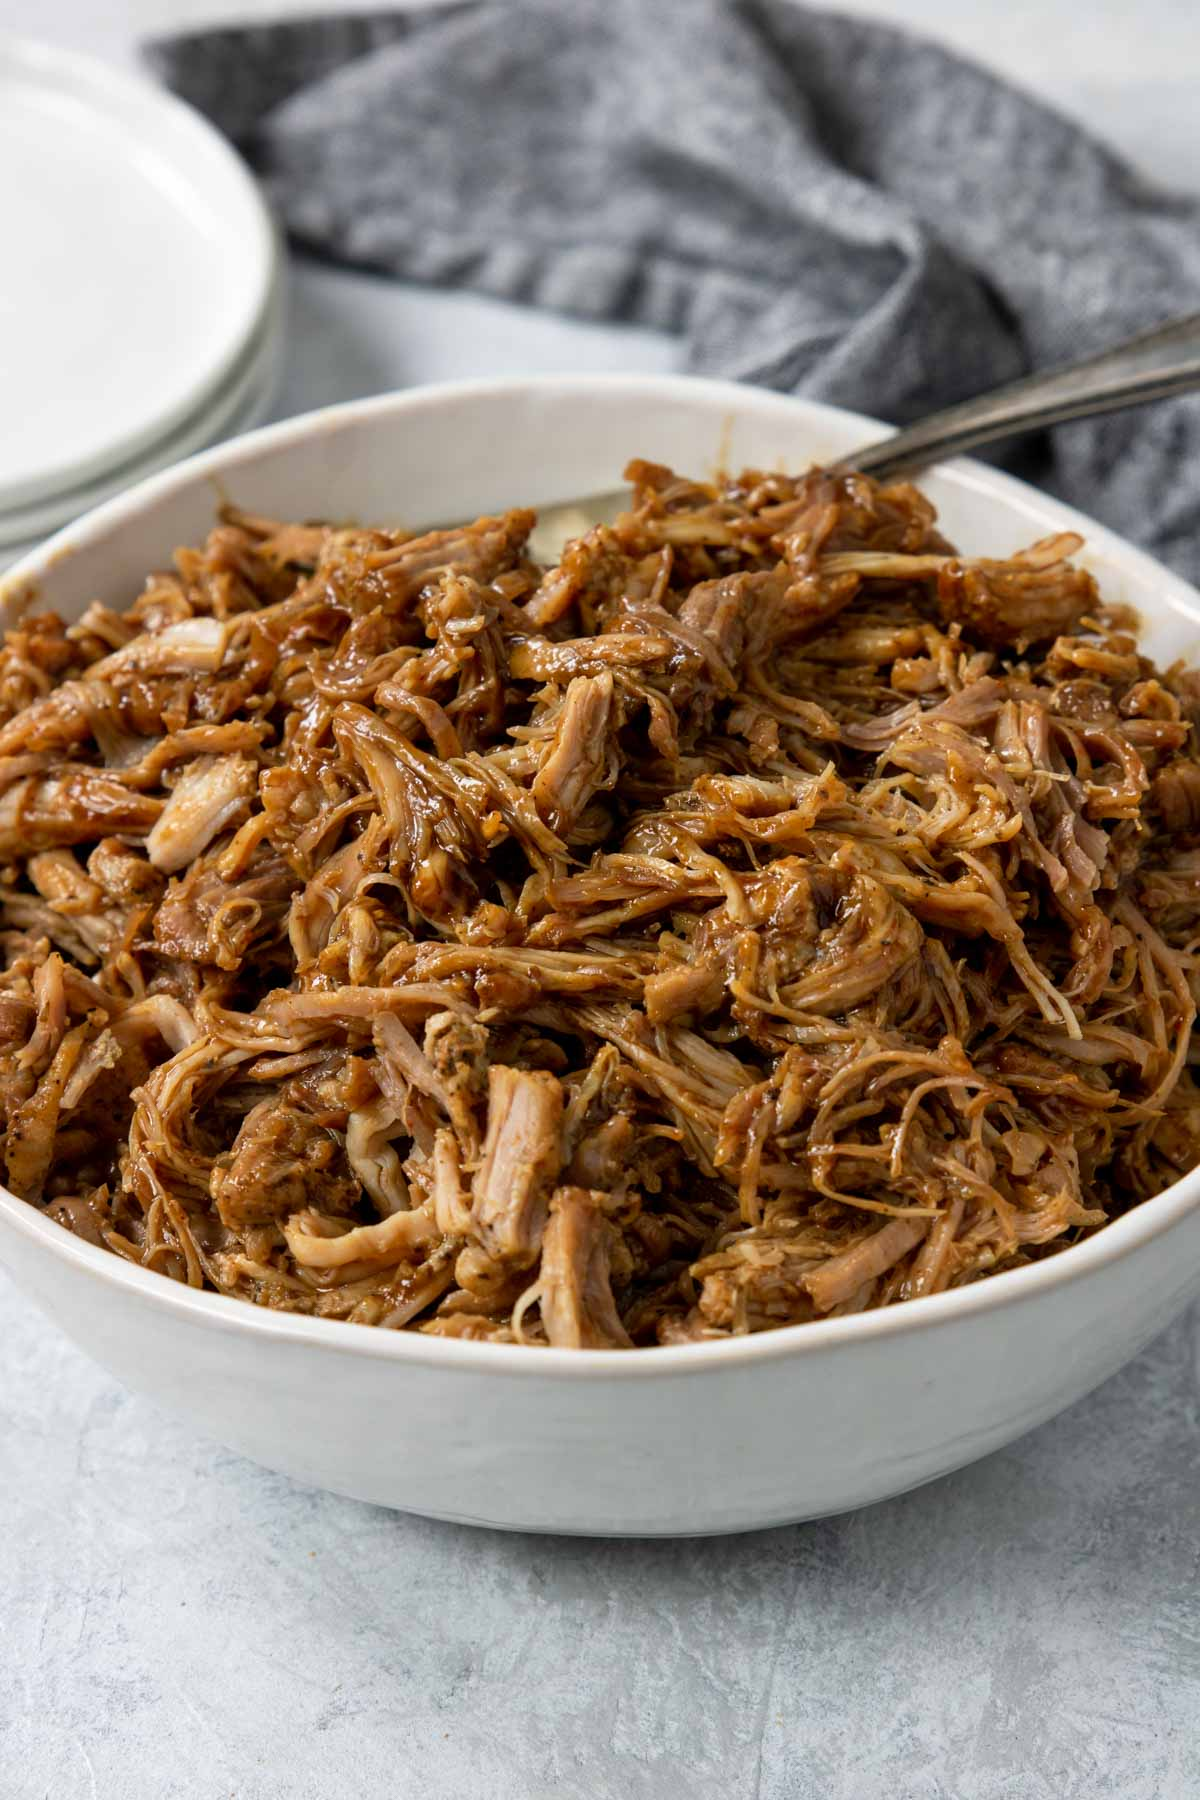 BBQ Pulled pork in a white bowl